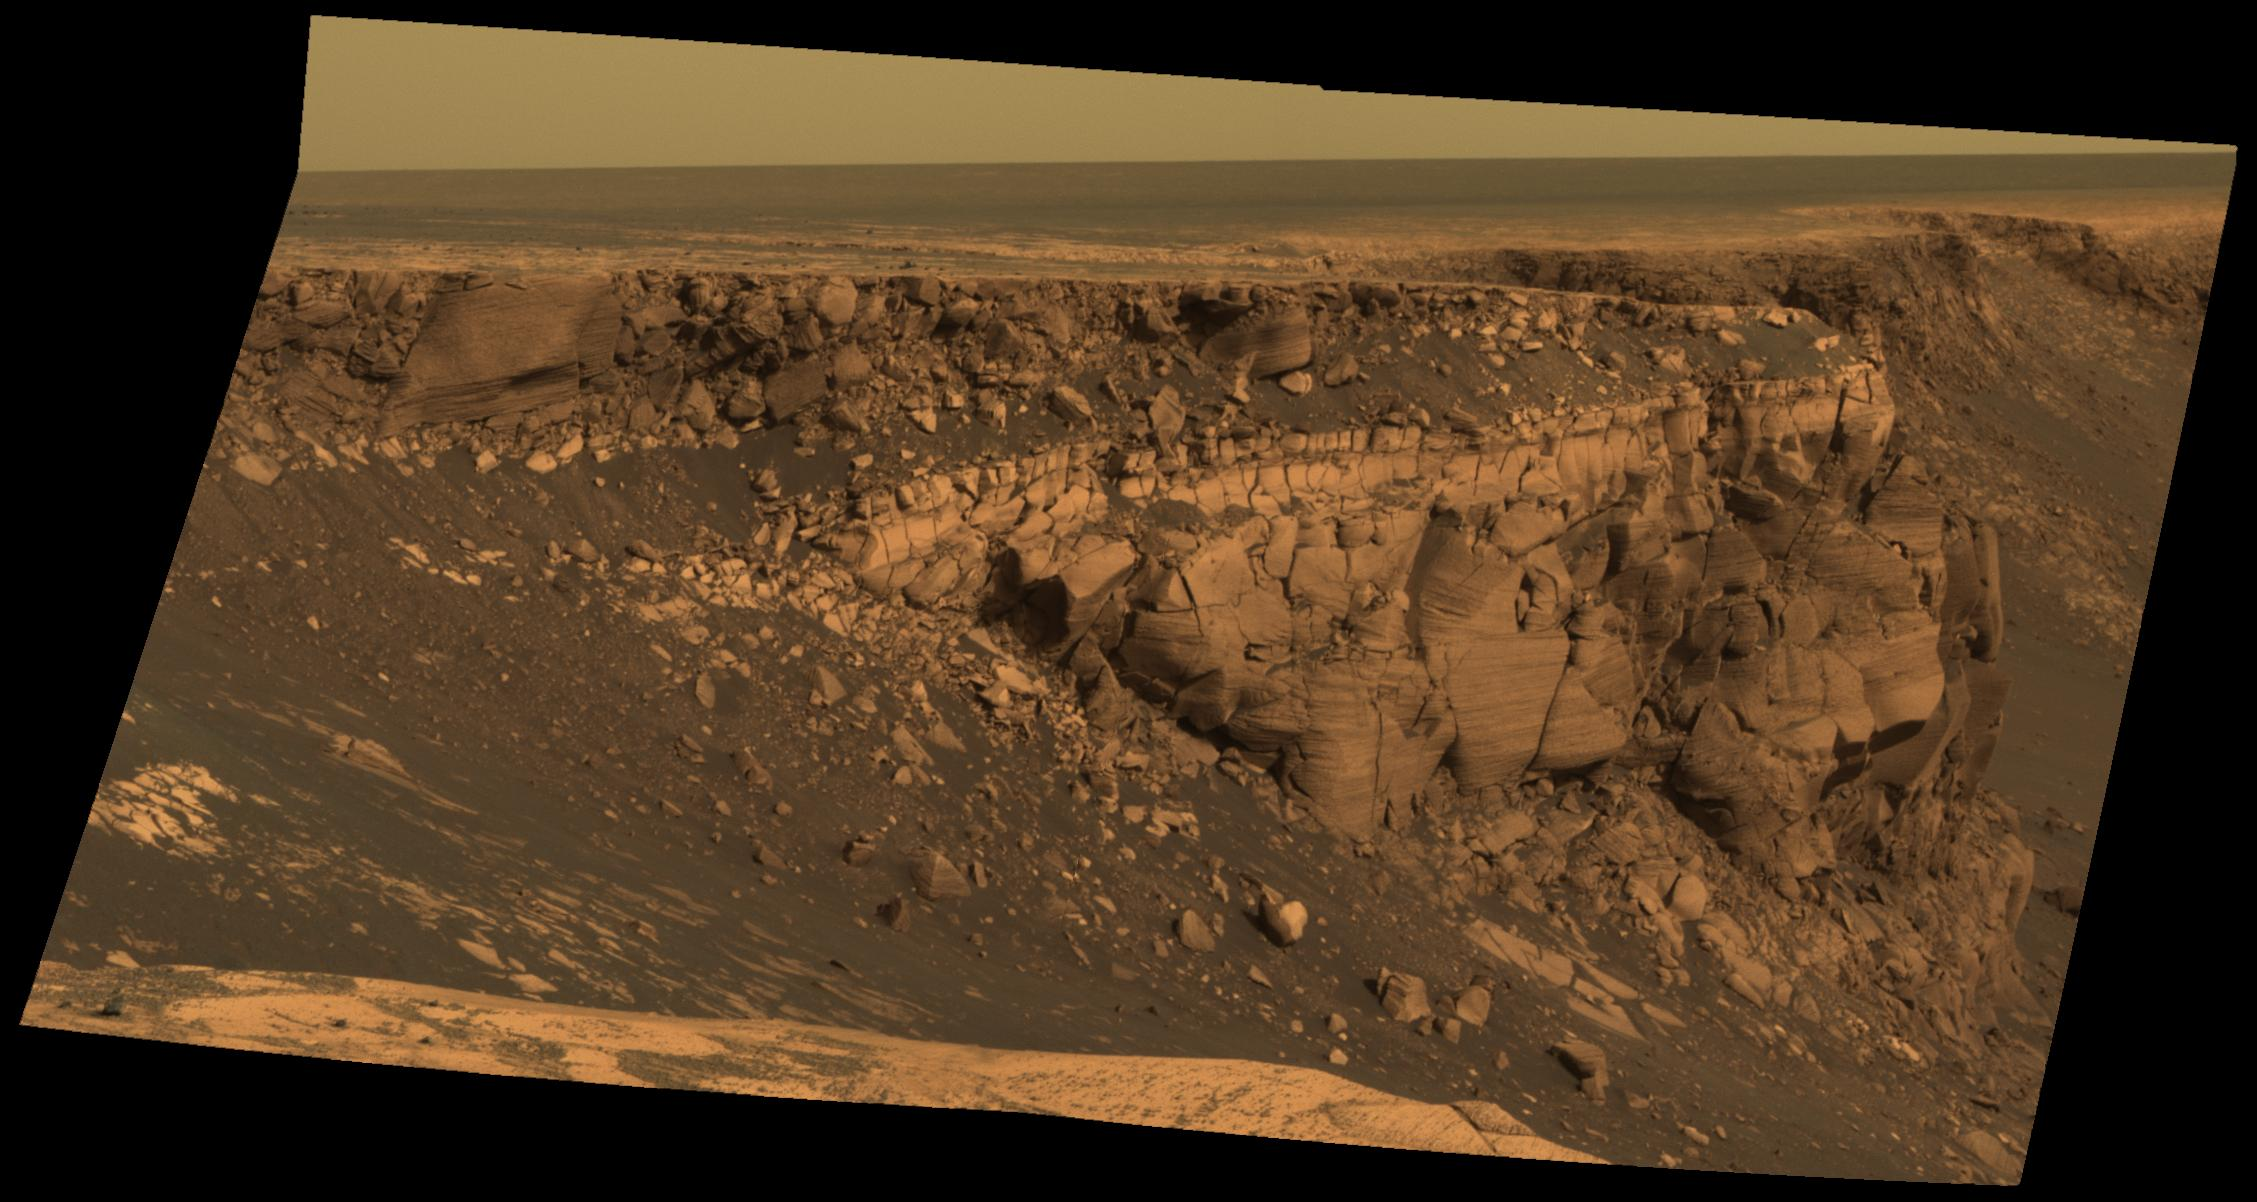 APOD 2007 July 3 At the Edge of Victoria Crater